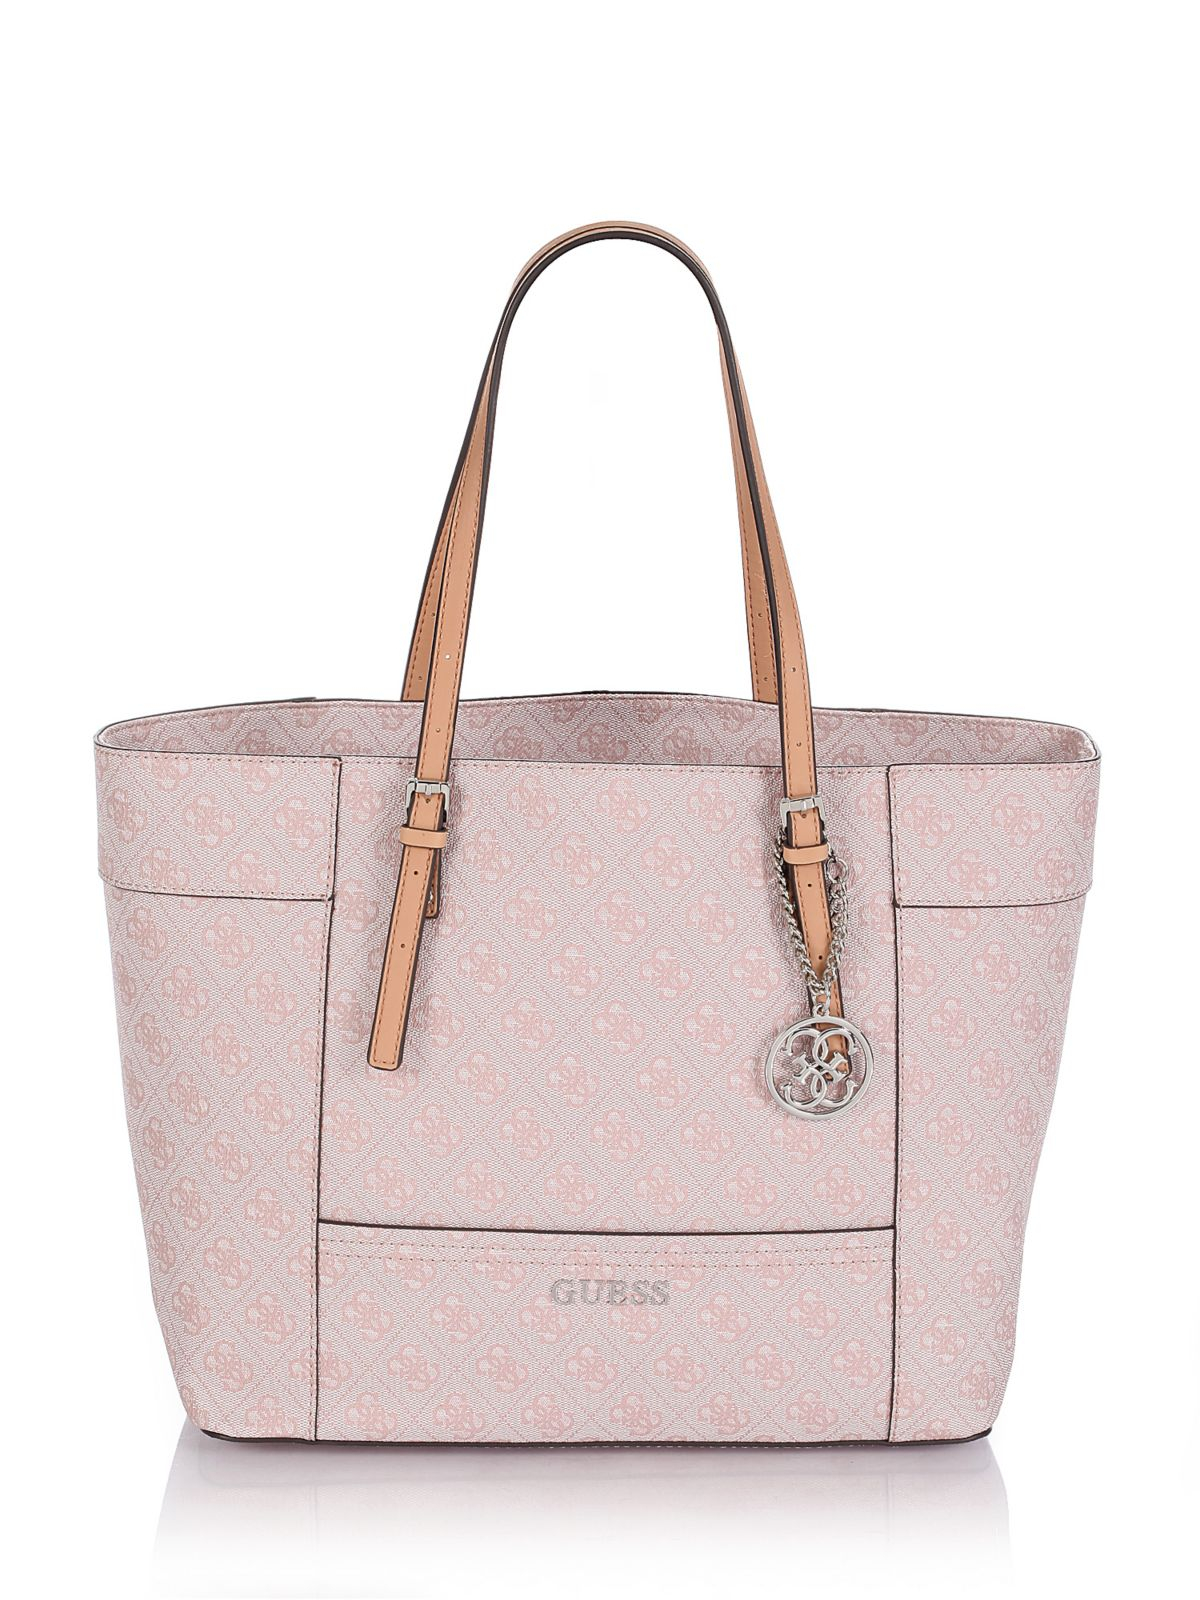 Guess Delaney Medium Classic Tote Logo Bag in Pink | Lyst